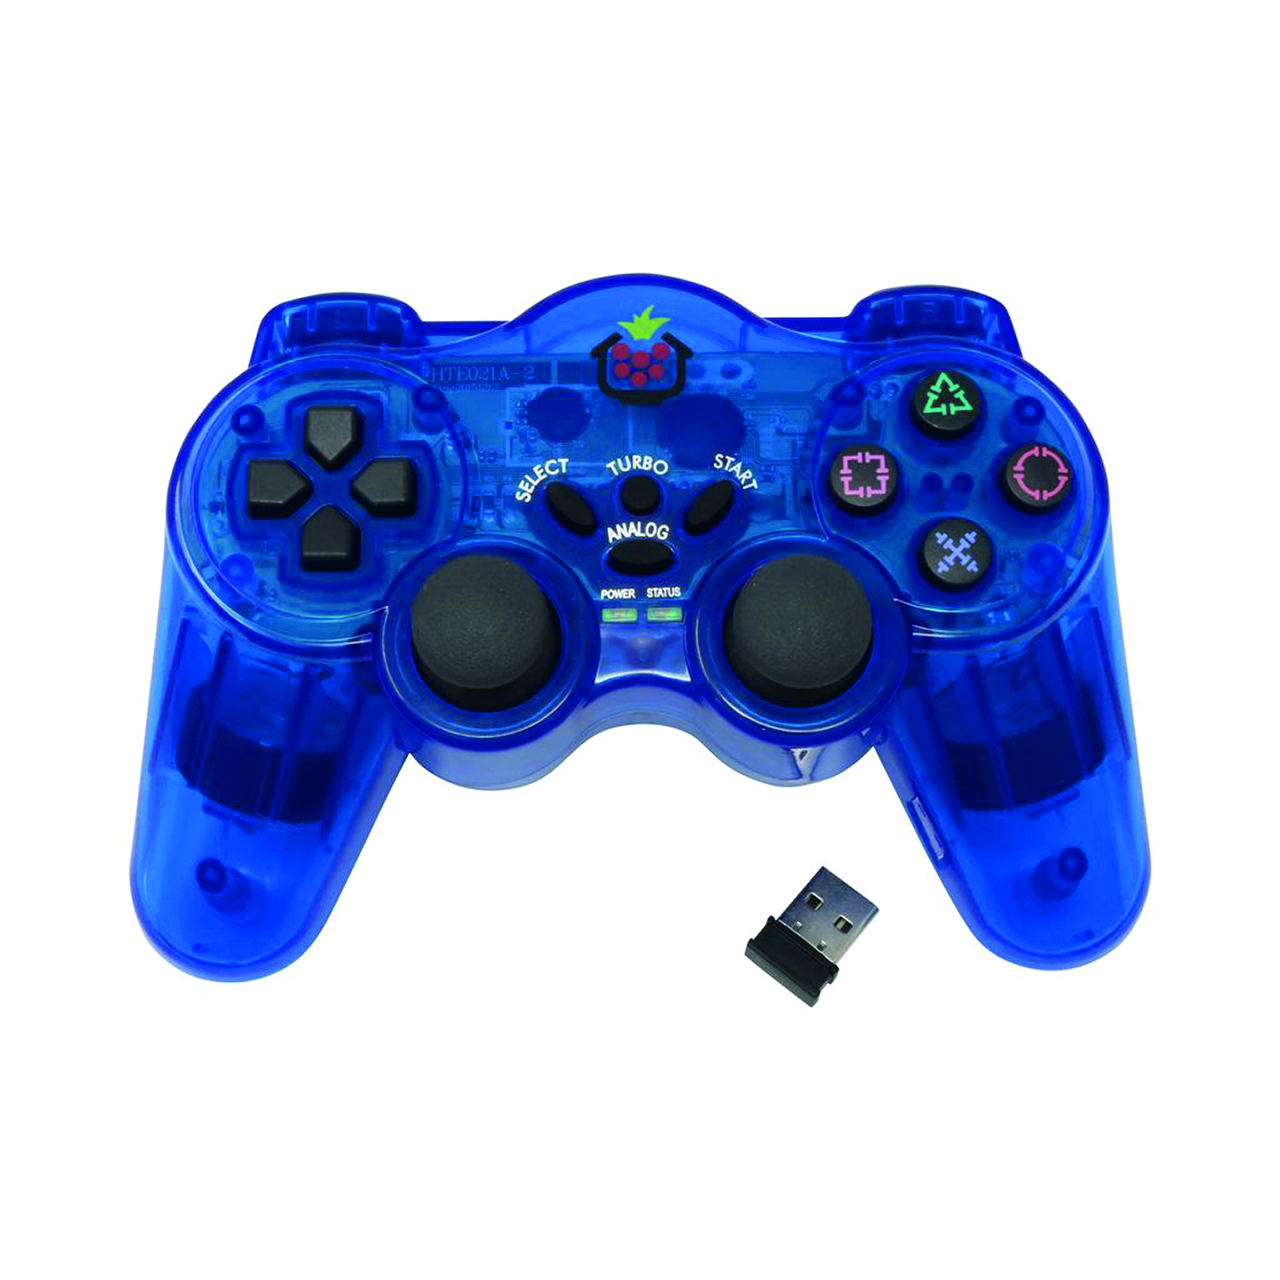 Wireless USB Game Controller review - The MagPi MagazineThe